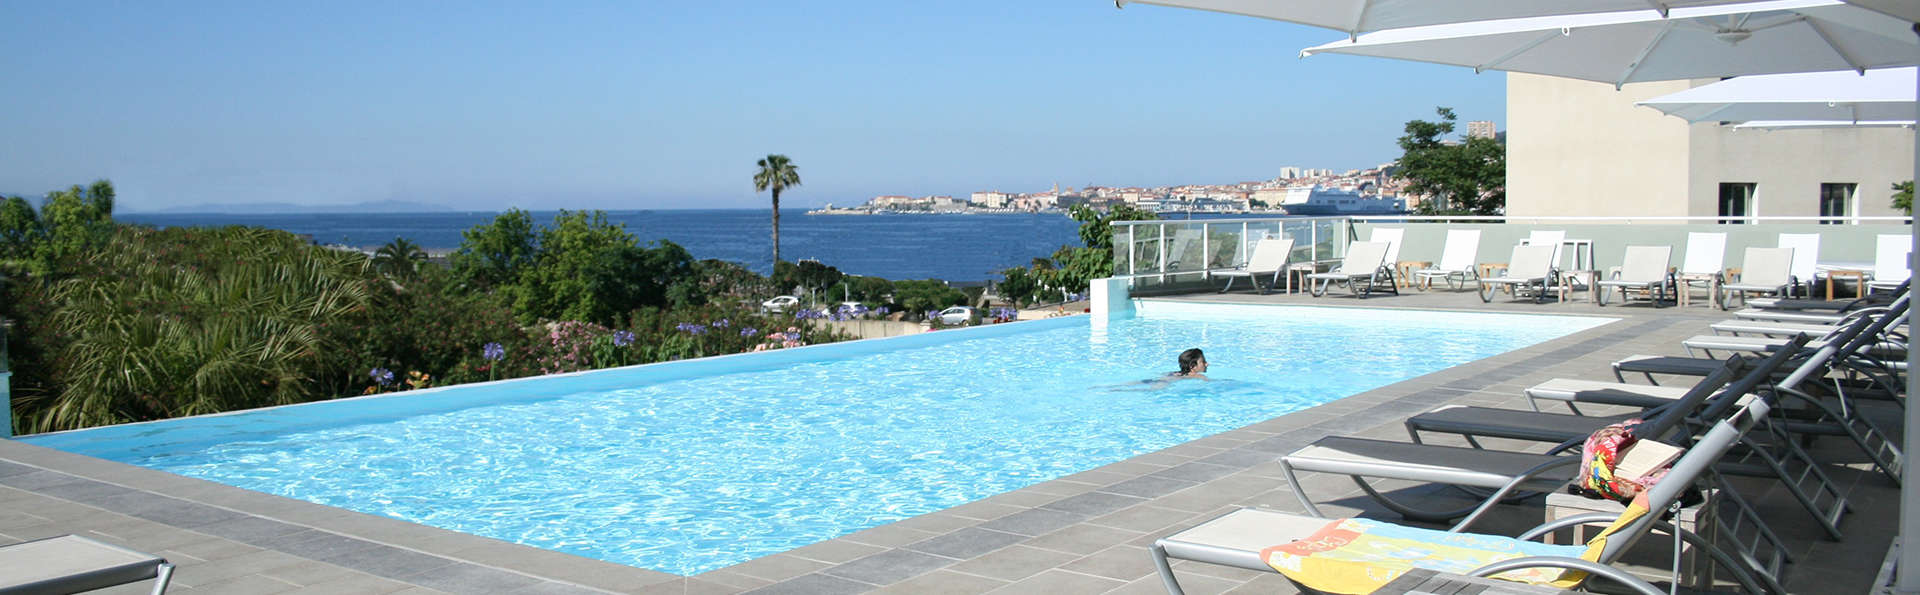 Hôtel Best Western Plus Ajaccio Amirauté - EDIT_NEW_pool1.jpg